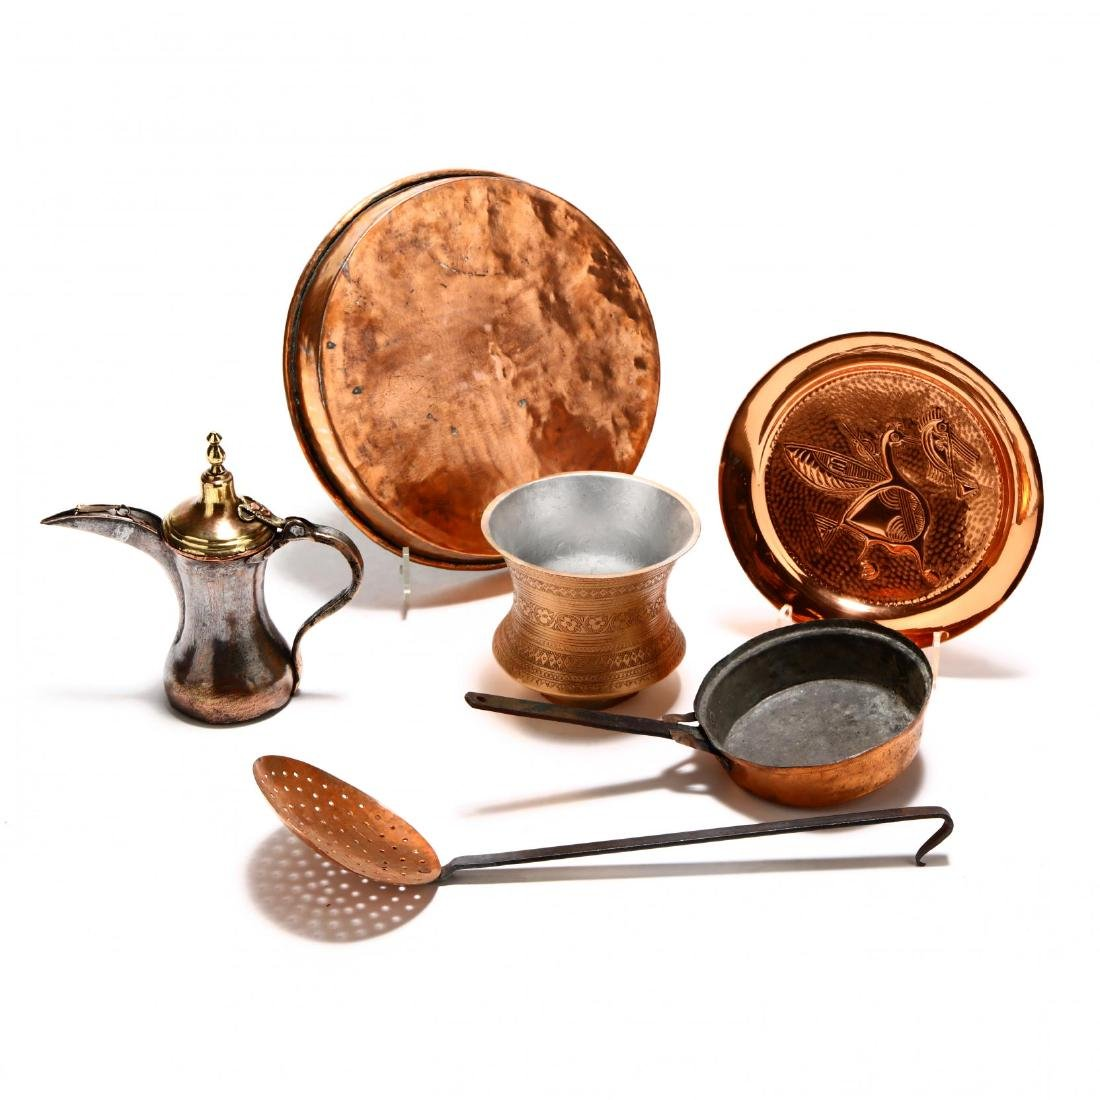 Group of Copper and Metal Kitchenware - 2